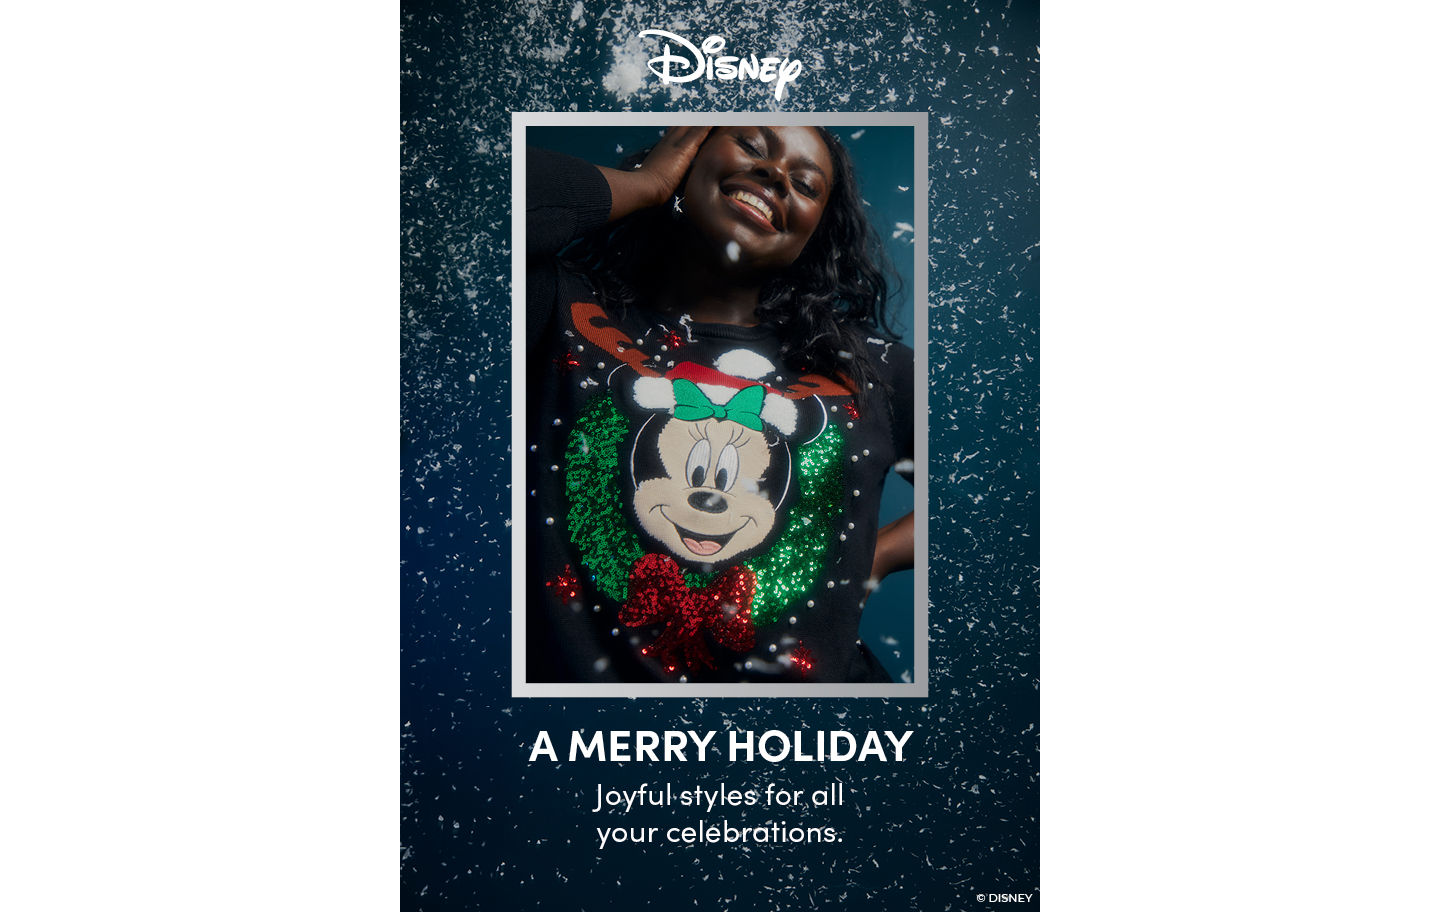 Disney A Merry Holiday Joyful Styles for all your Celebrations